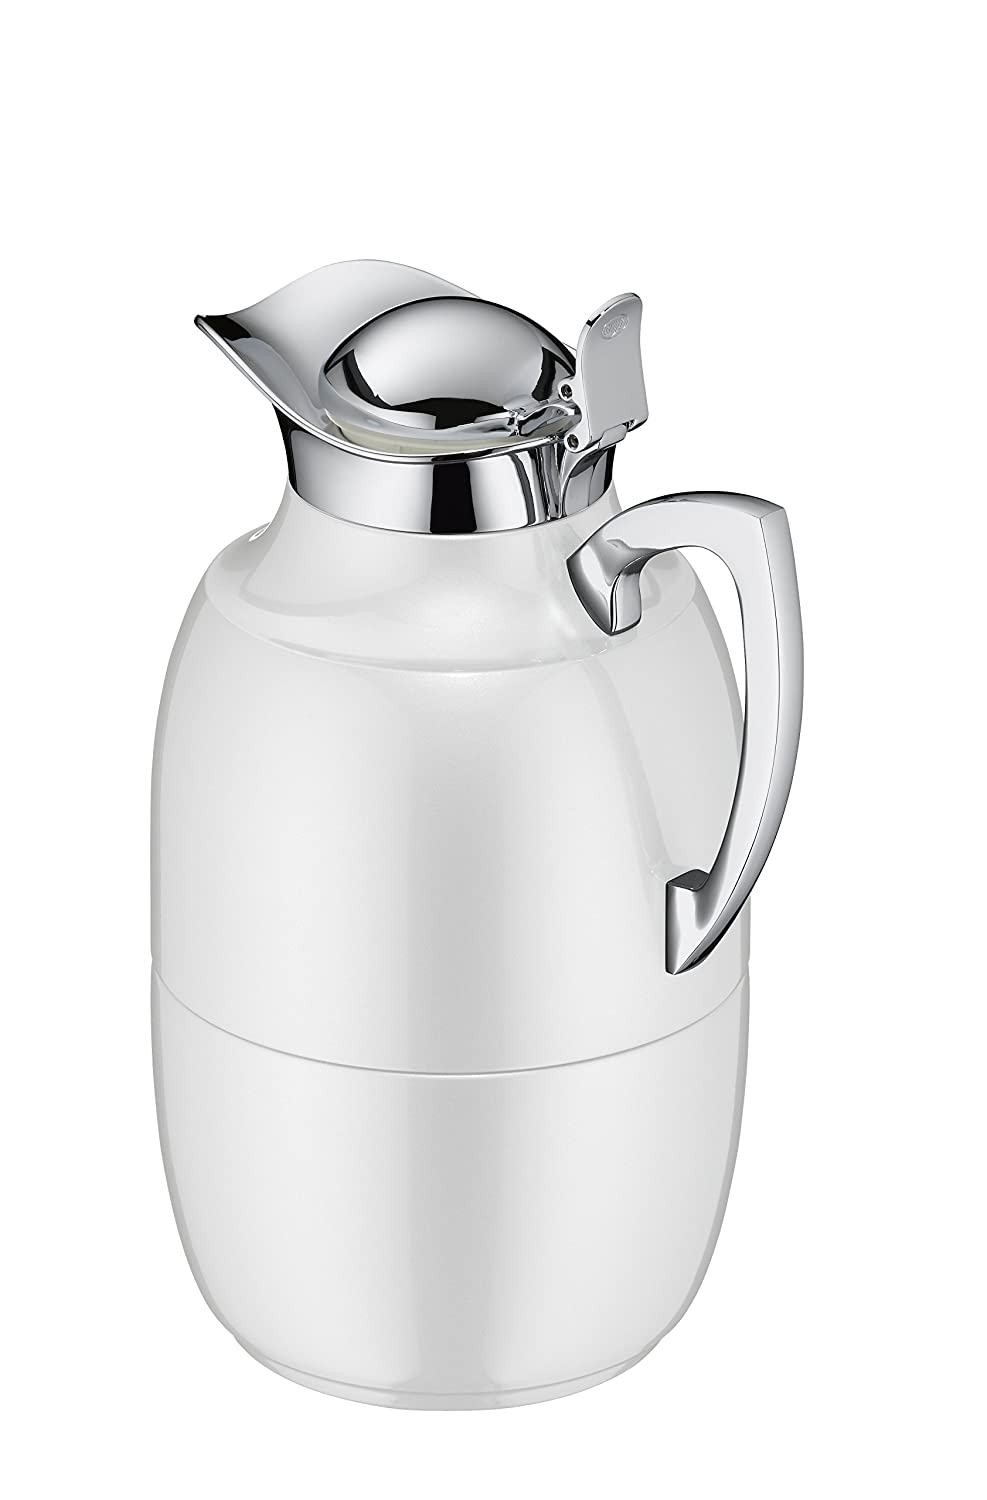 Alfi Juwel Thermos Insulating Jug, Stainless Steel, polar weiß, 1 L 0570.219.100